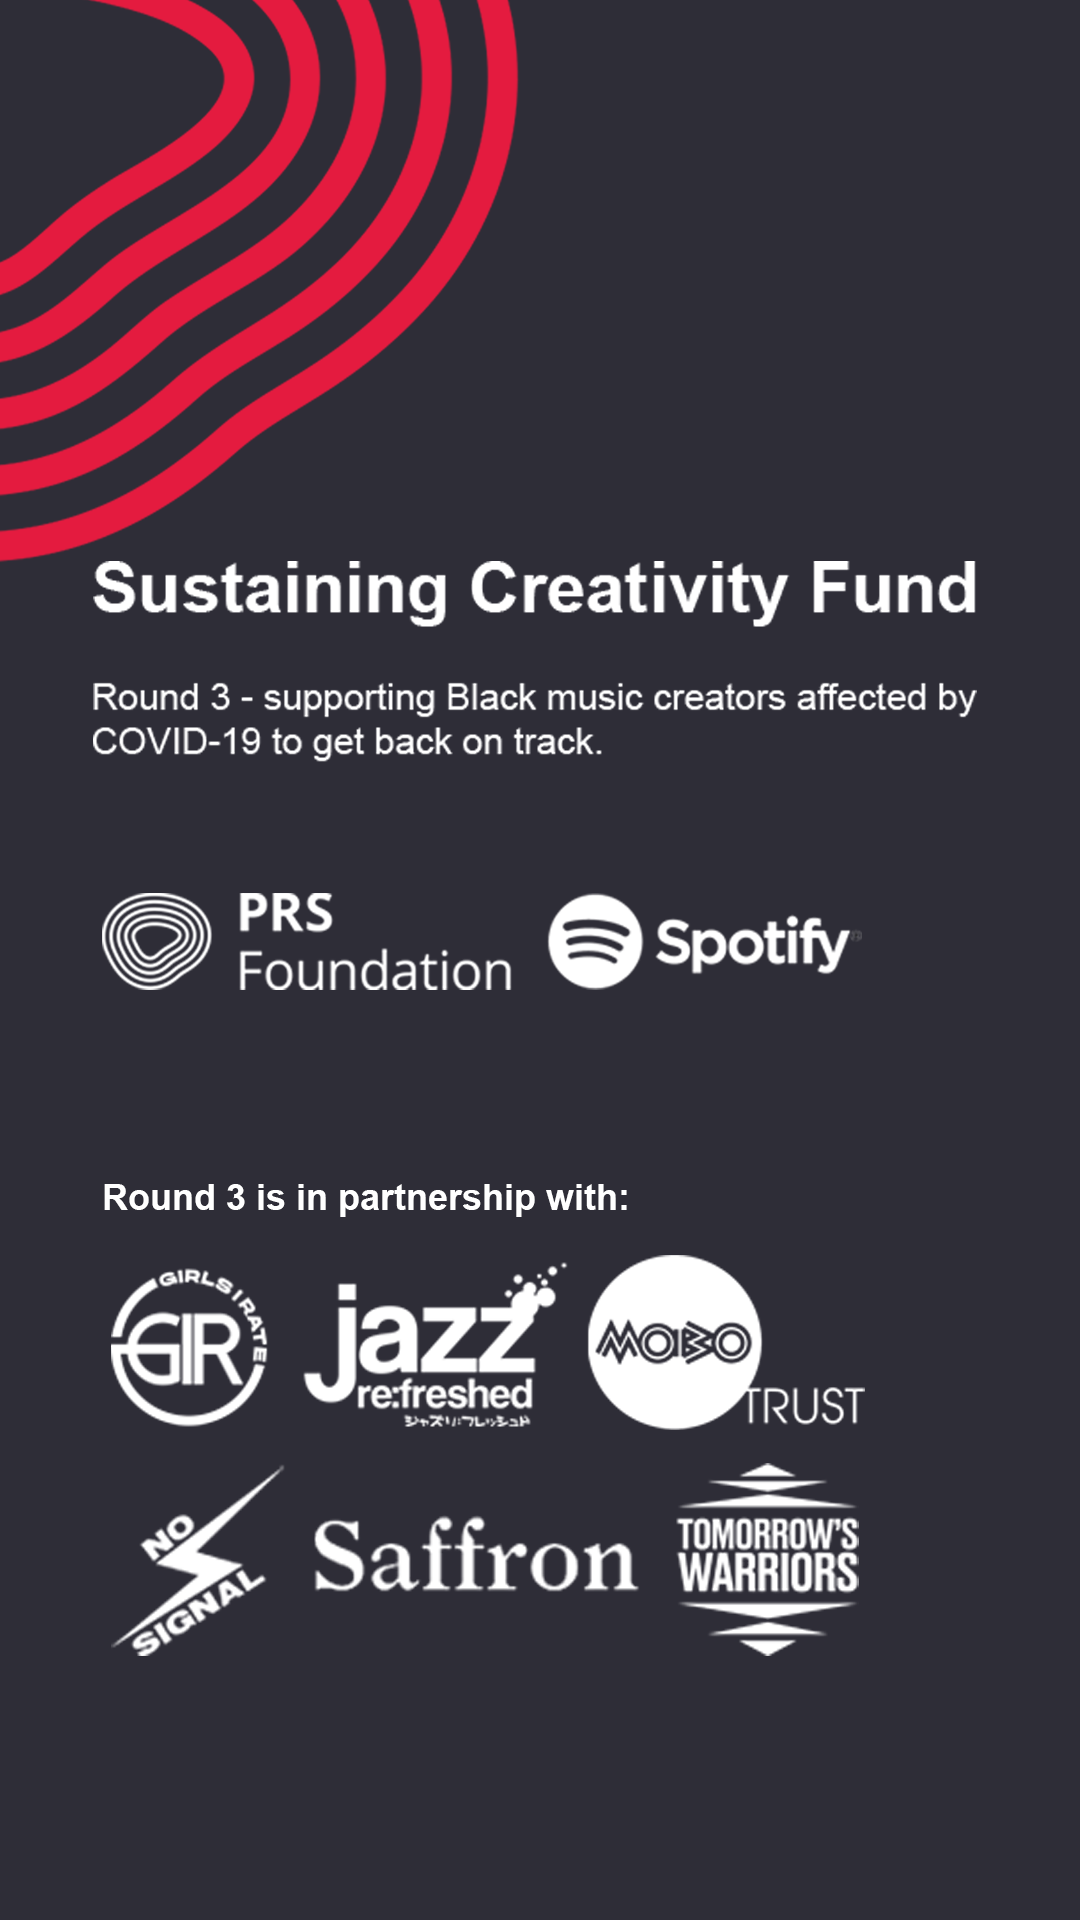 Sustaining Creativity Fund